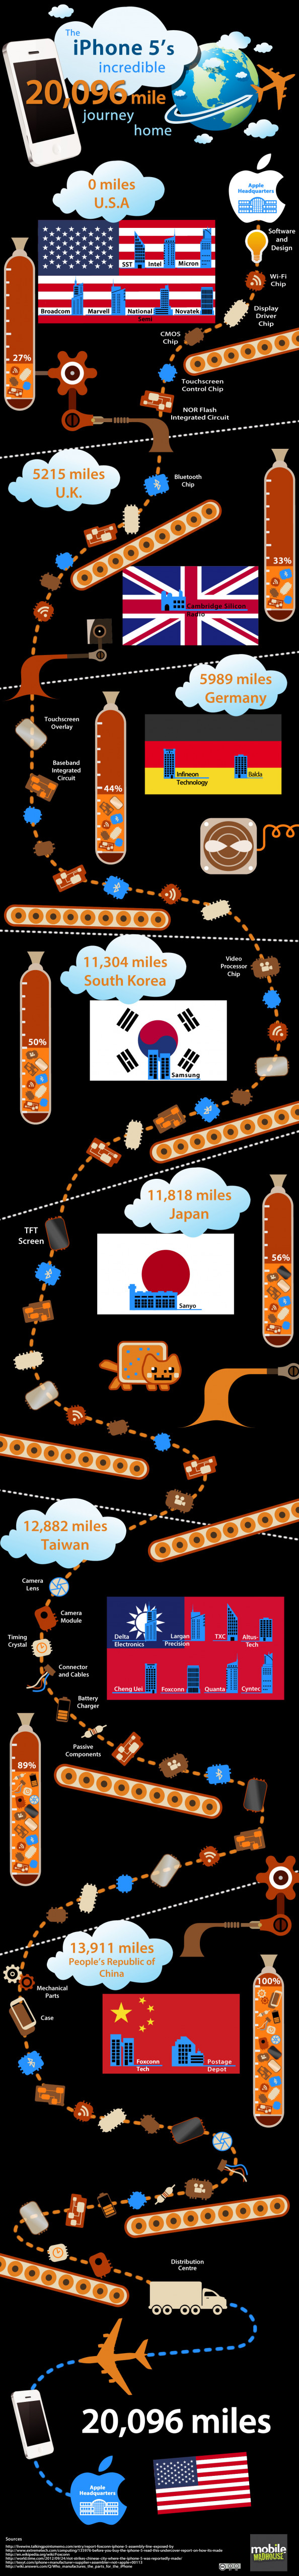 The iphone5's 20,096 mile return journey home Infographic